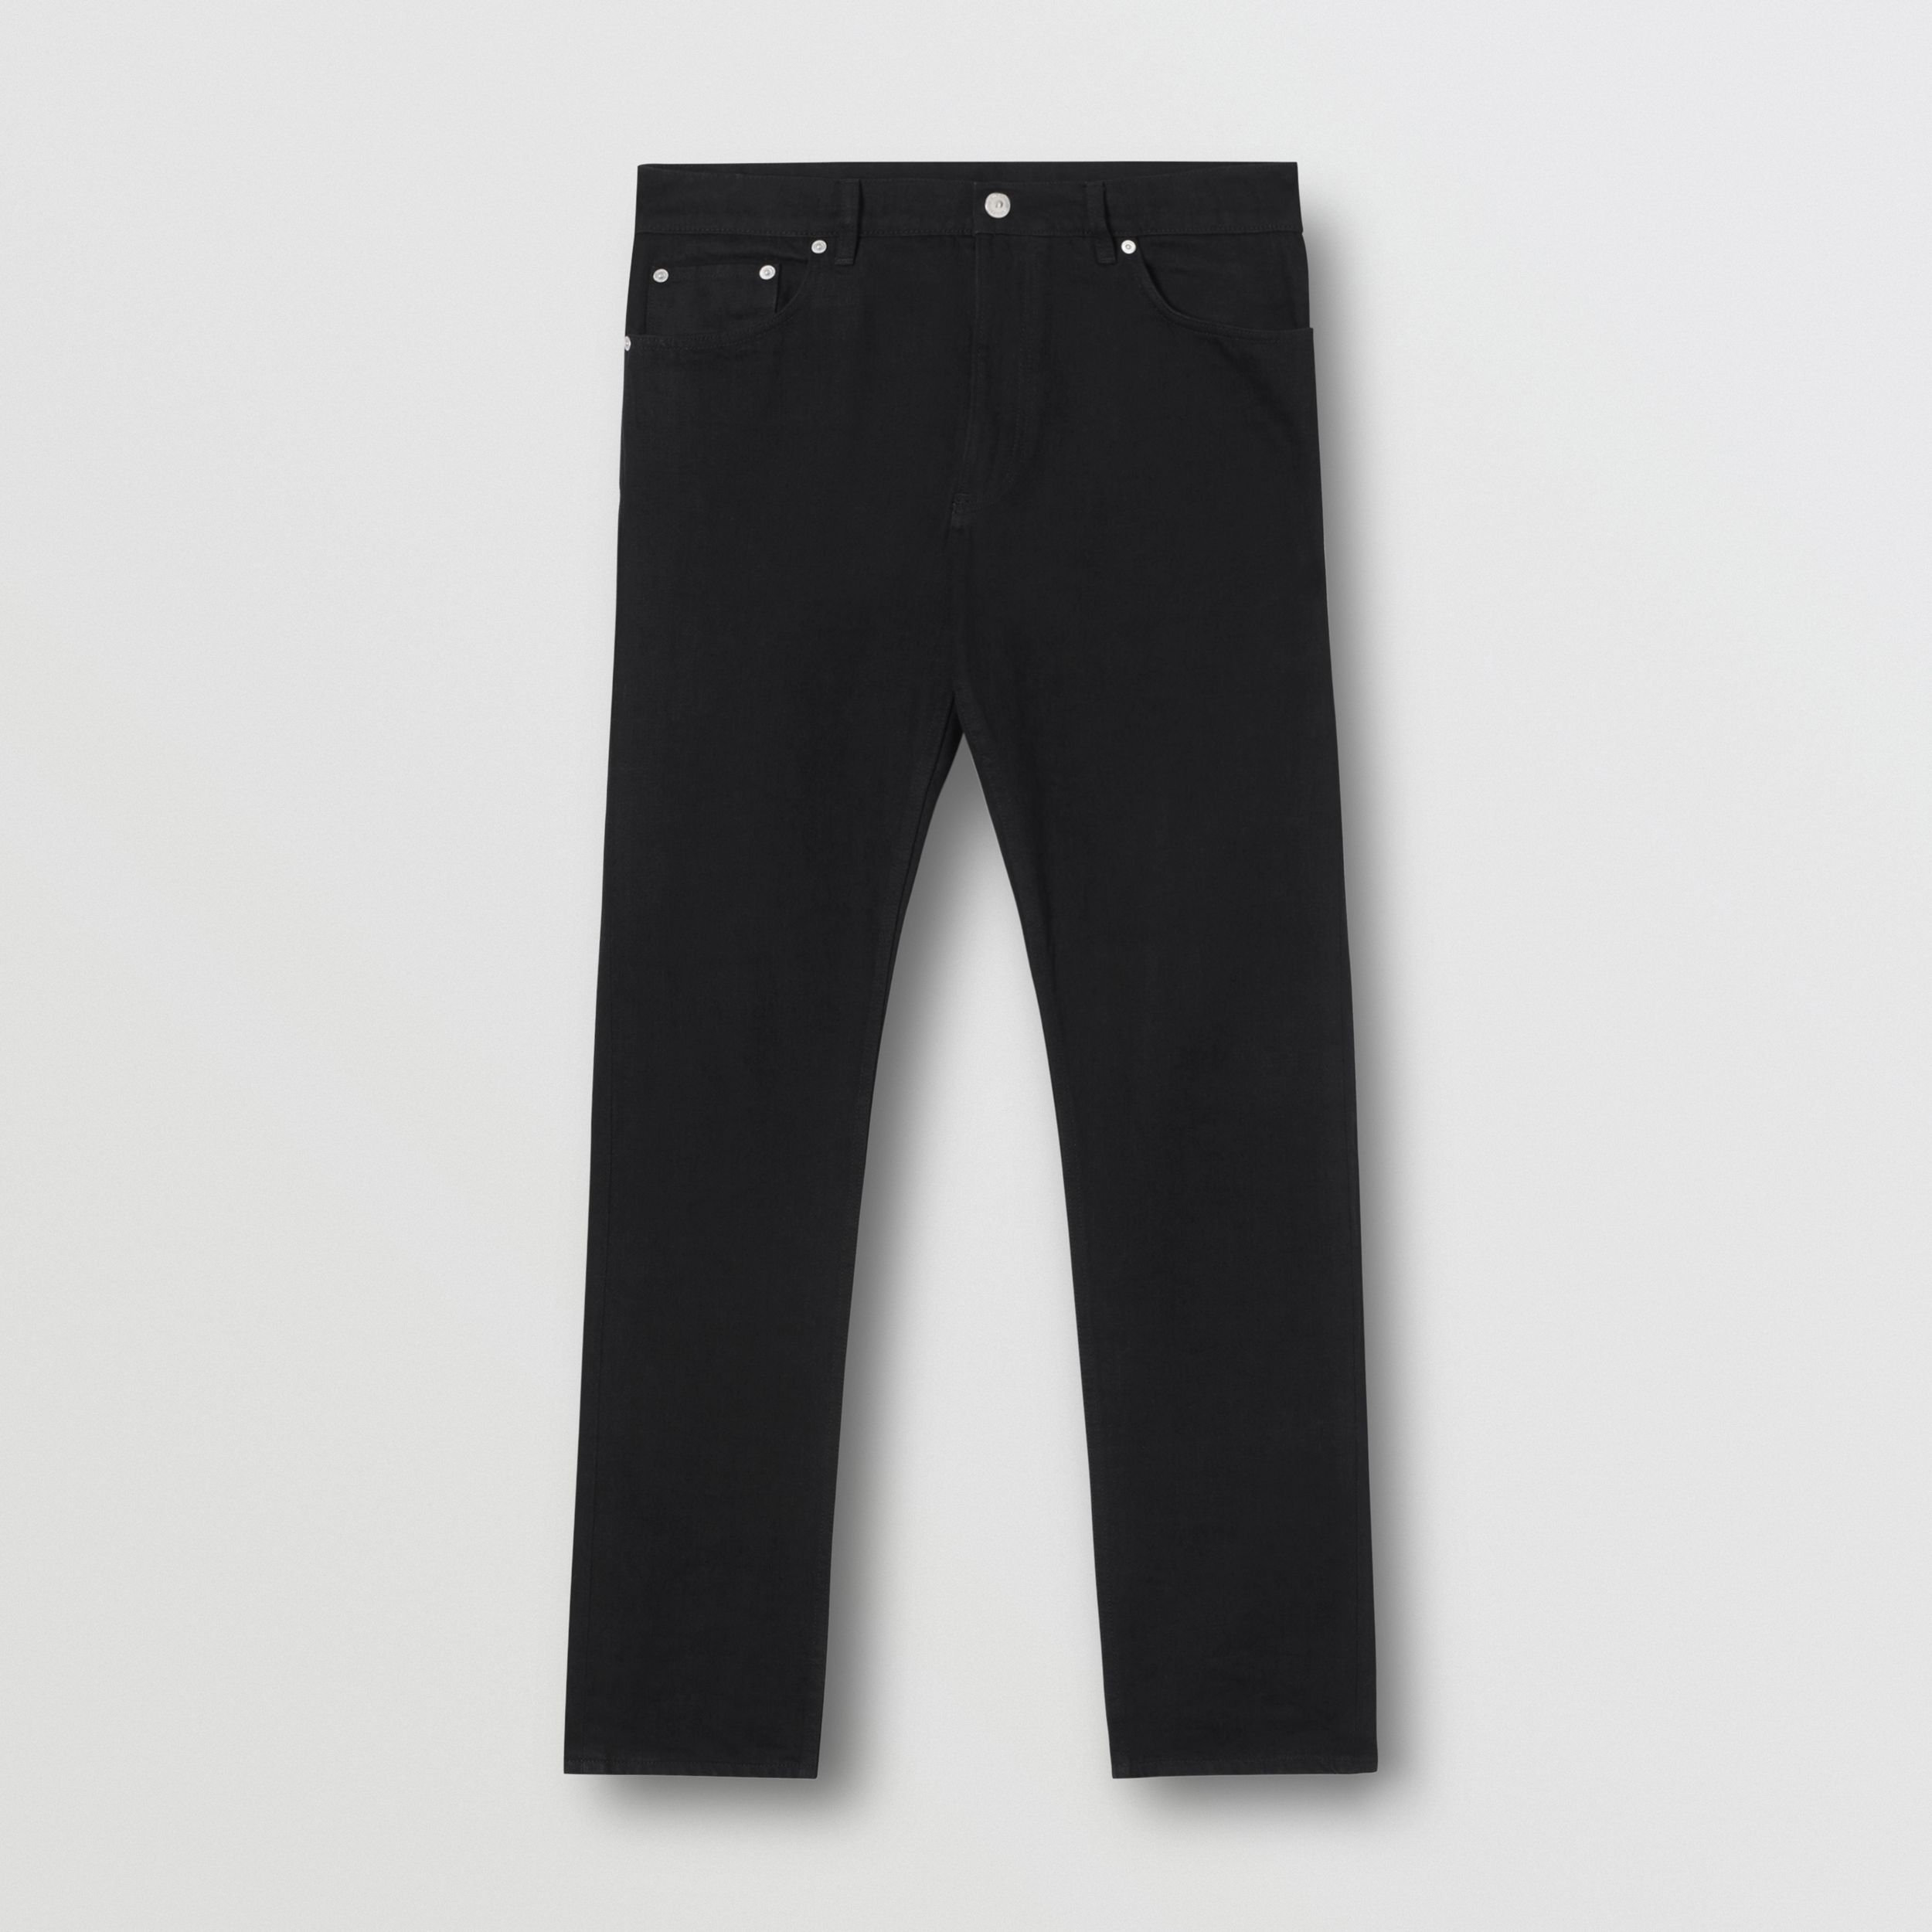 Straight Fit Japanese Denim Jeans in Black - Men | Burberry - 4